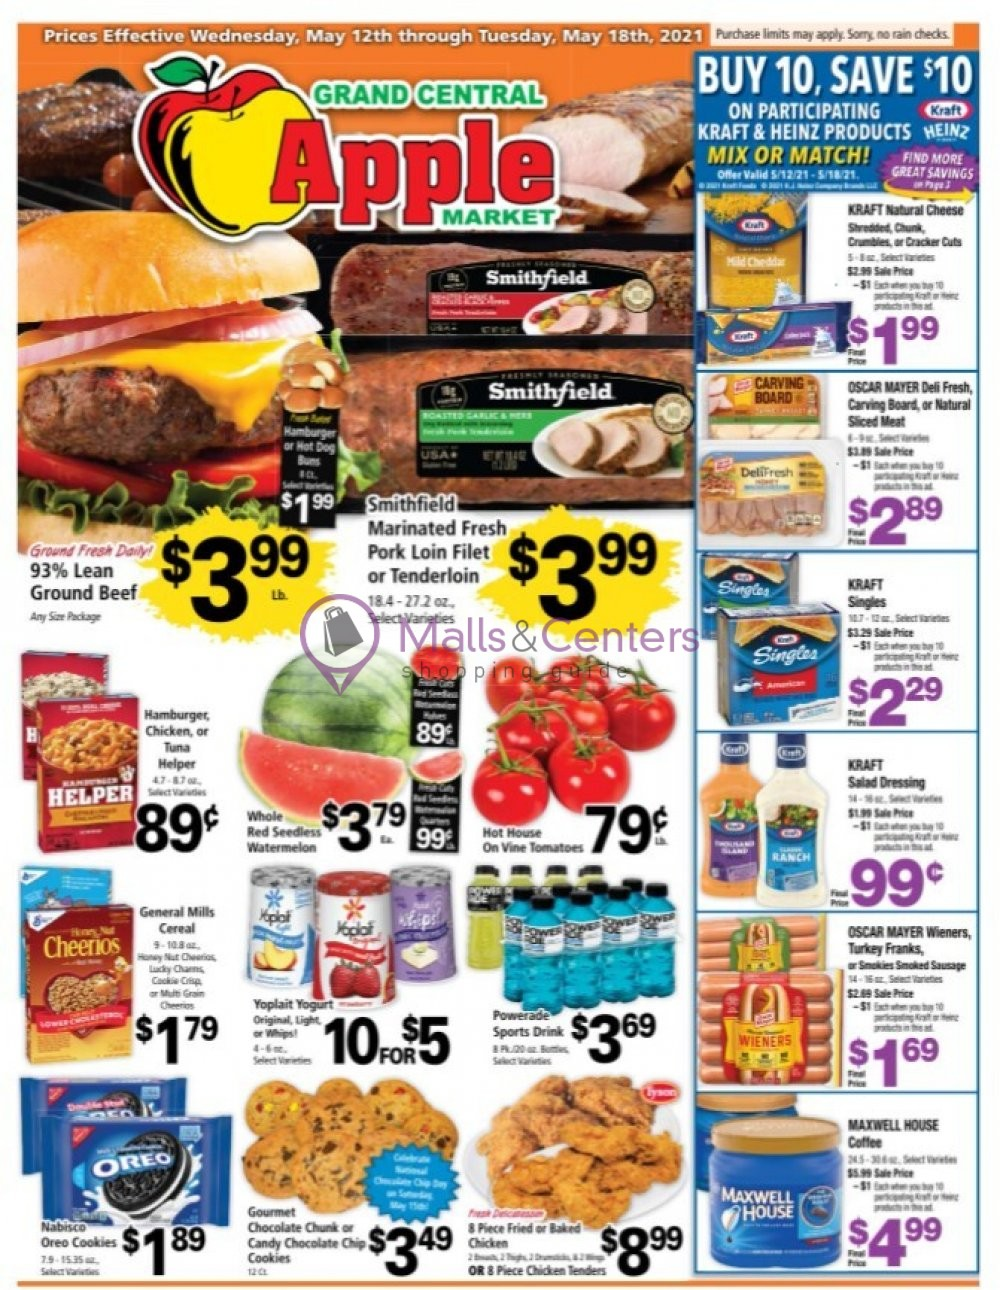 weekly ads Grand Central Apple Market - page 1 - mallscenters.com